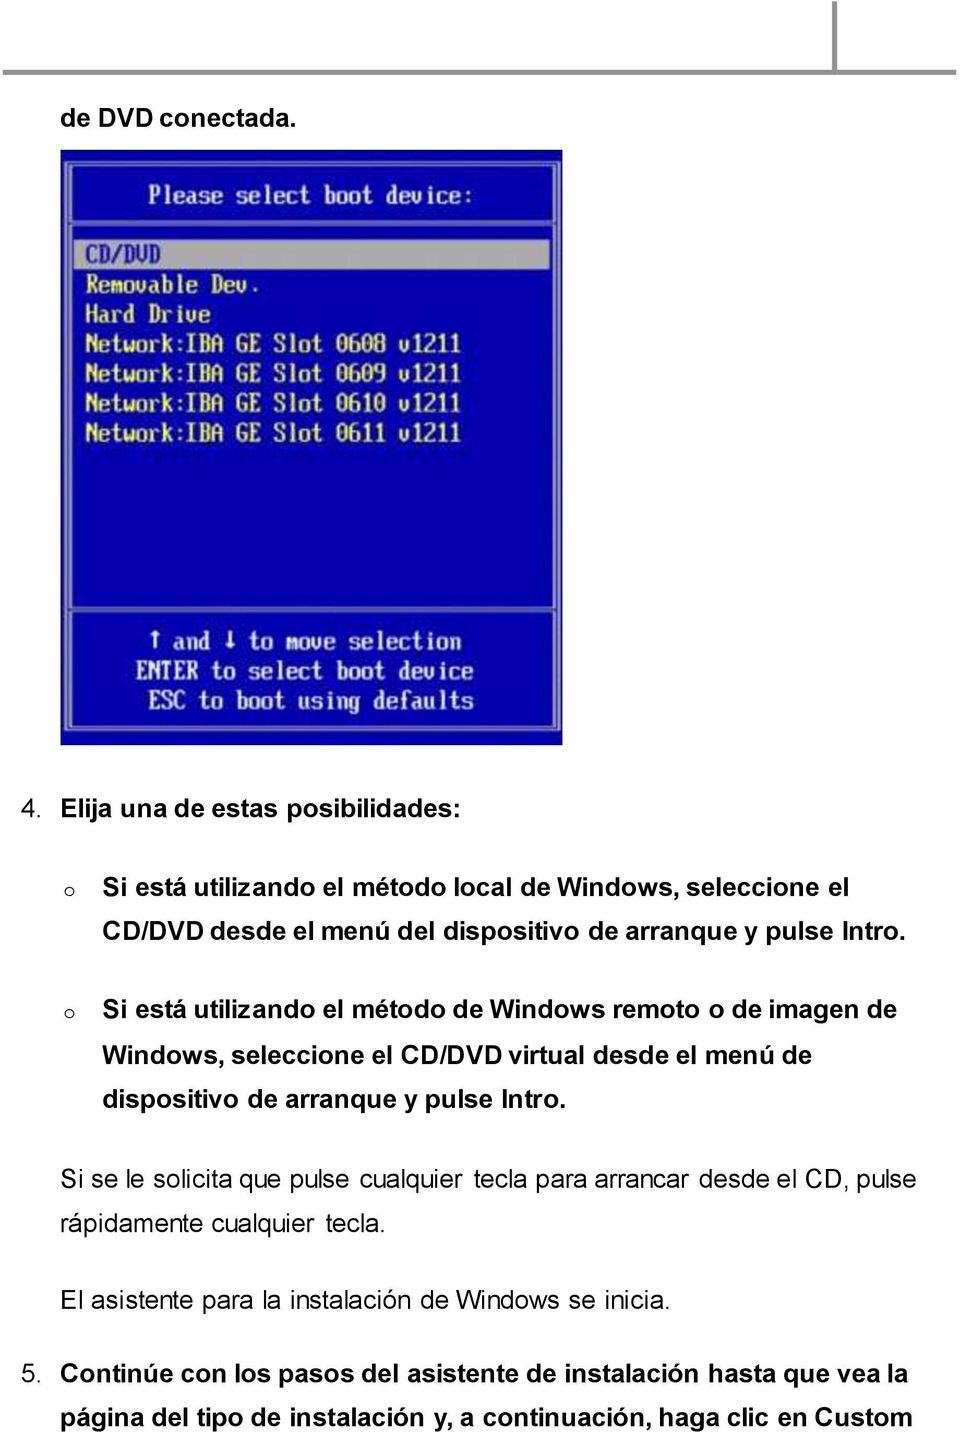 o Si está utilizando el método de Windows remoto o de imagen de Windows, seleccione el CD/DVD virtual desde el menú de dispositivo de arranque y pulse Intro.